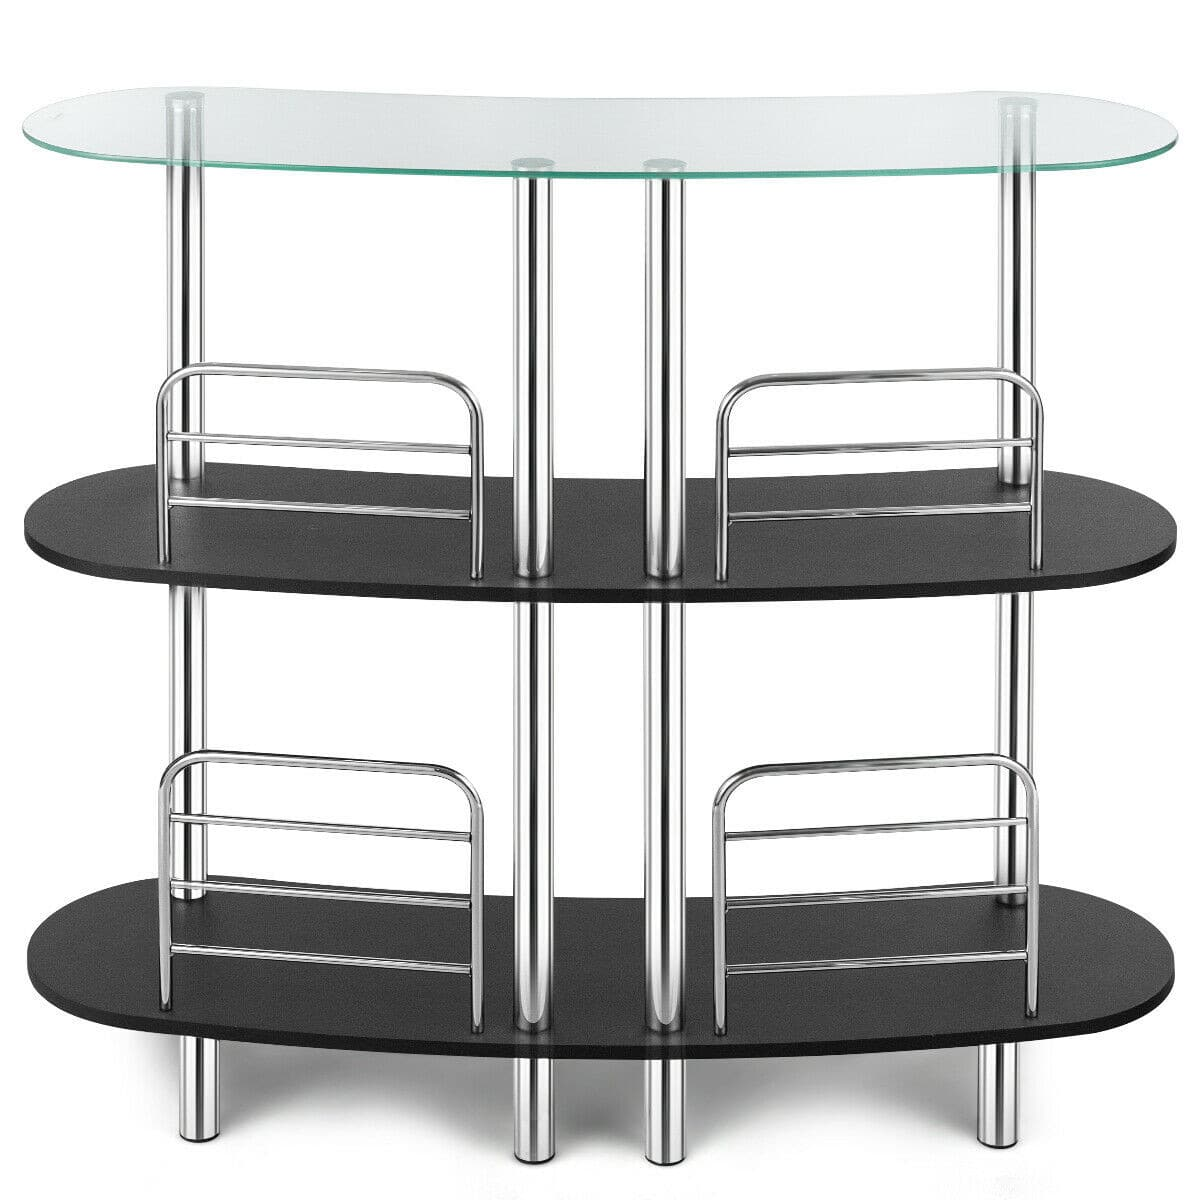 3-tier Bar Cabinets Table with Tempered GlassTop -$115.95 + Free Shipping